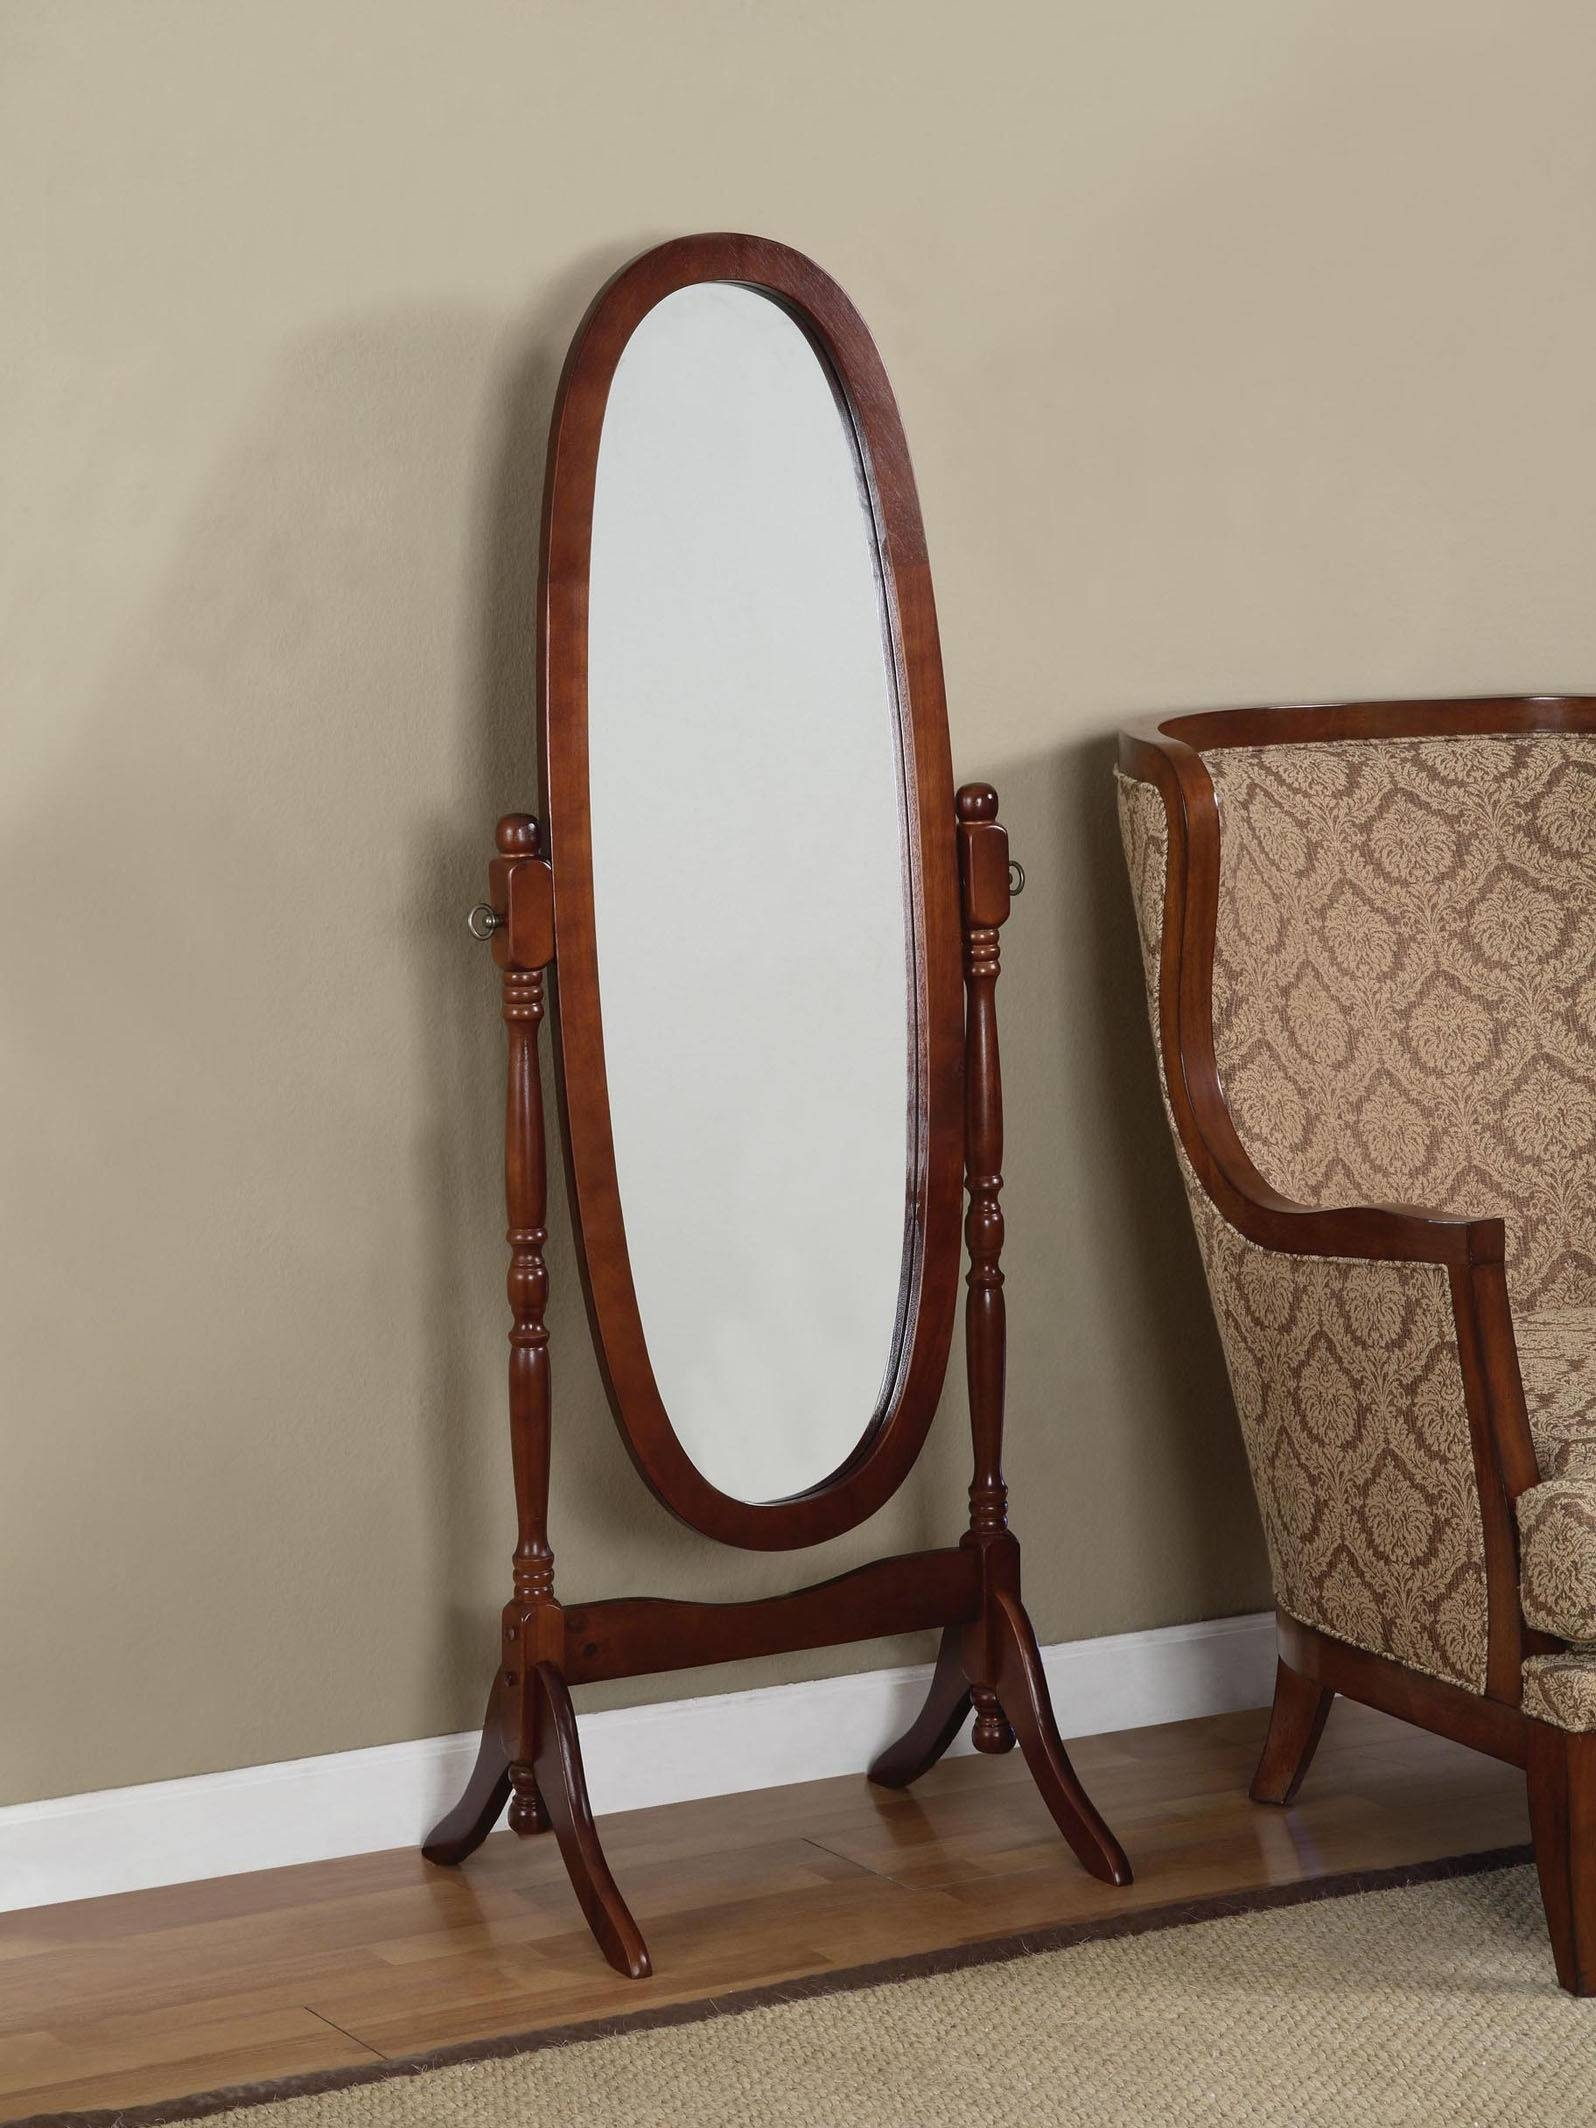 Furniture: Cheval Mirror | Standing Jewelry Mirror | Standing Mirrors Intended For Cheval Free Standing Mirrors (View 3 of 15)